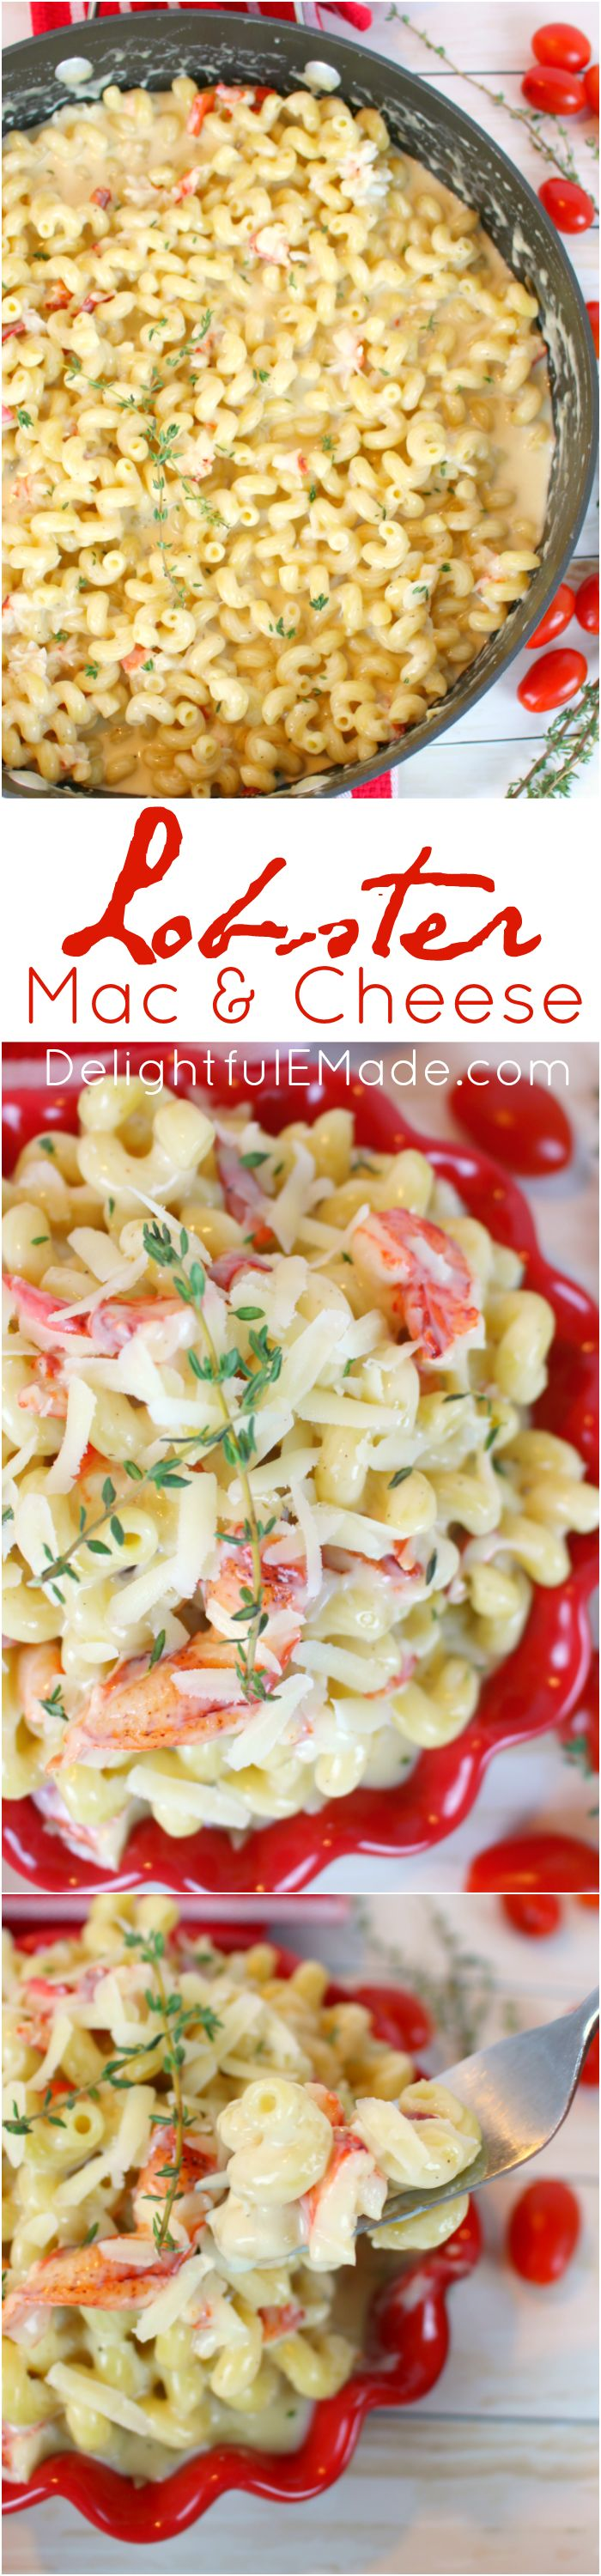 Comfort food at its best!  With a delicious three-cheese sauce, big chunks of fresh lobster, and al dente pasta, this Lobster Mac and Cheese is the perfect dinner any night of the week!